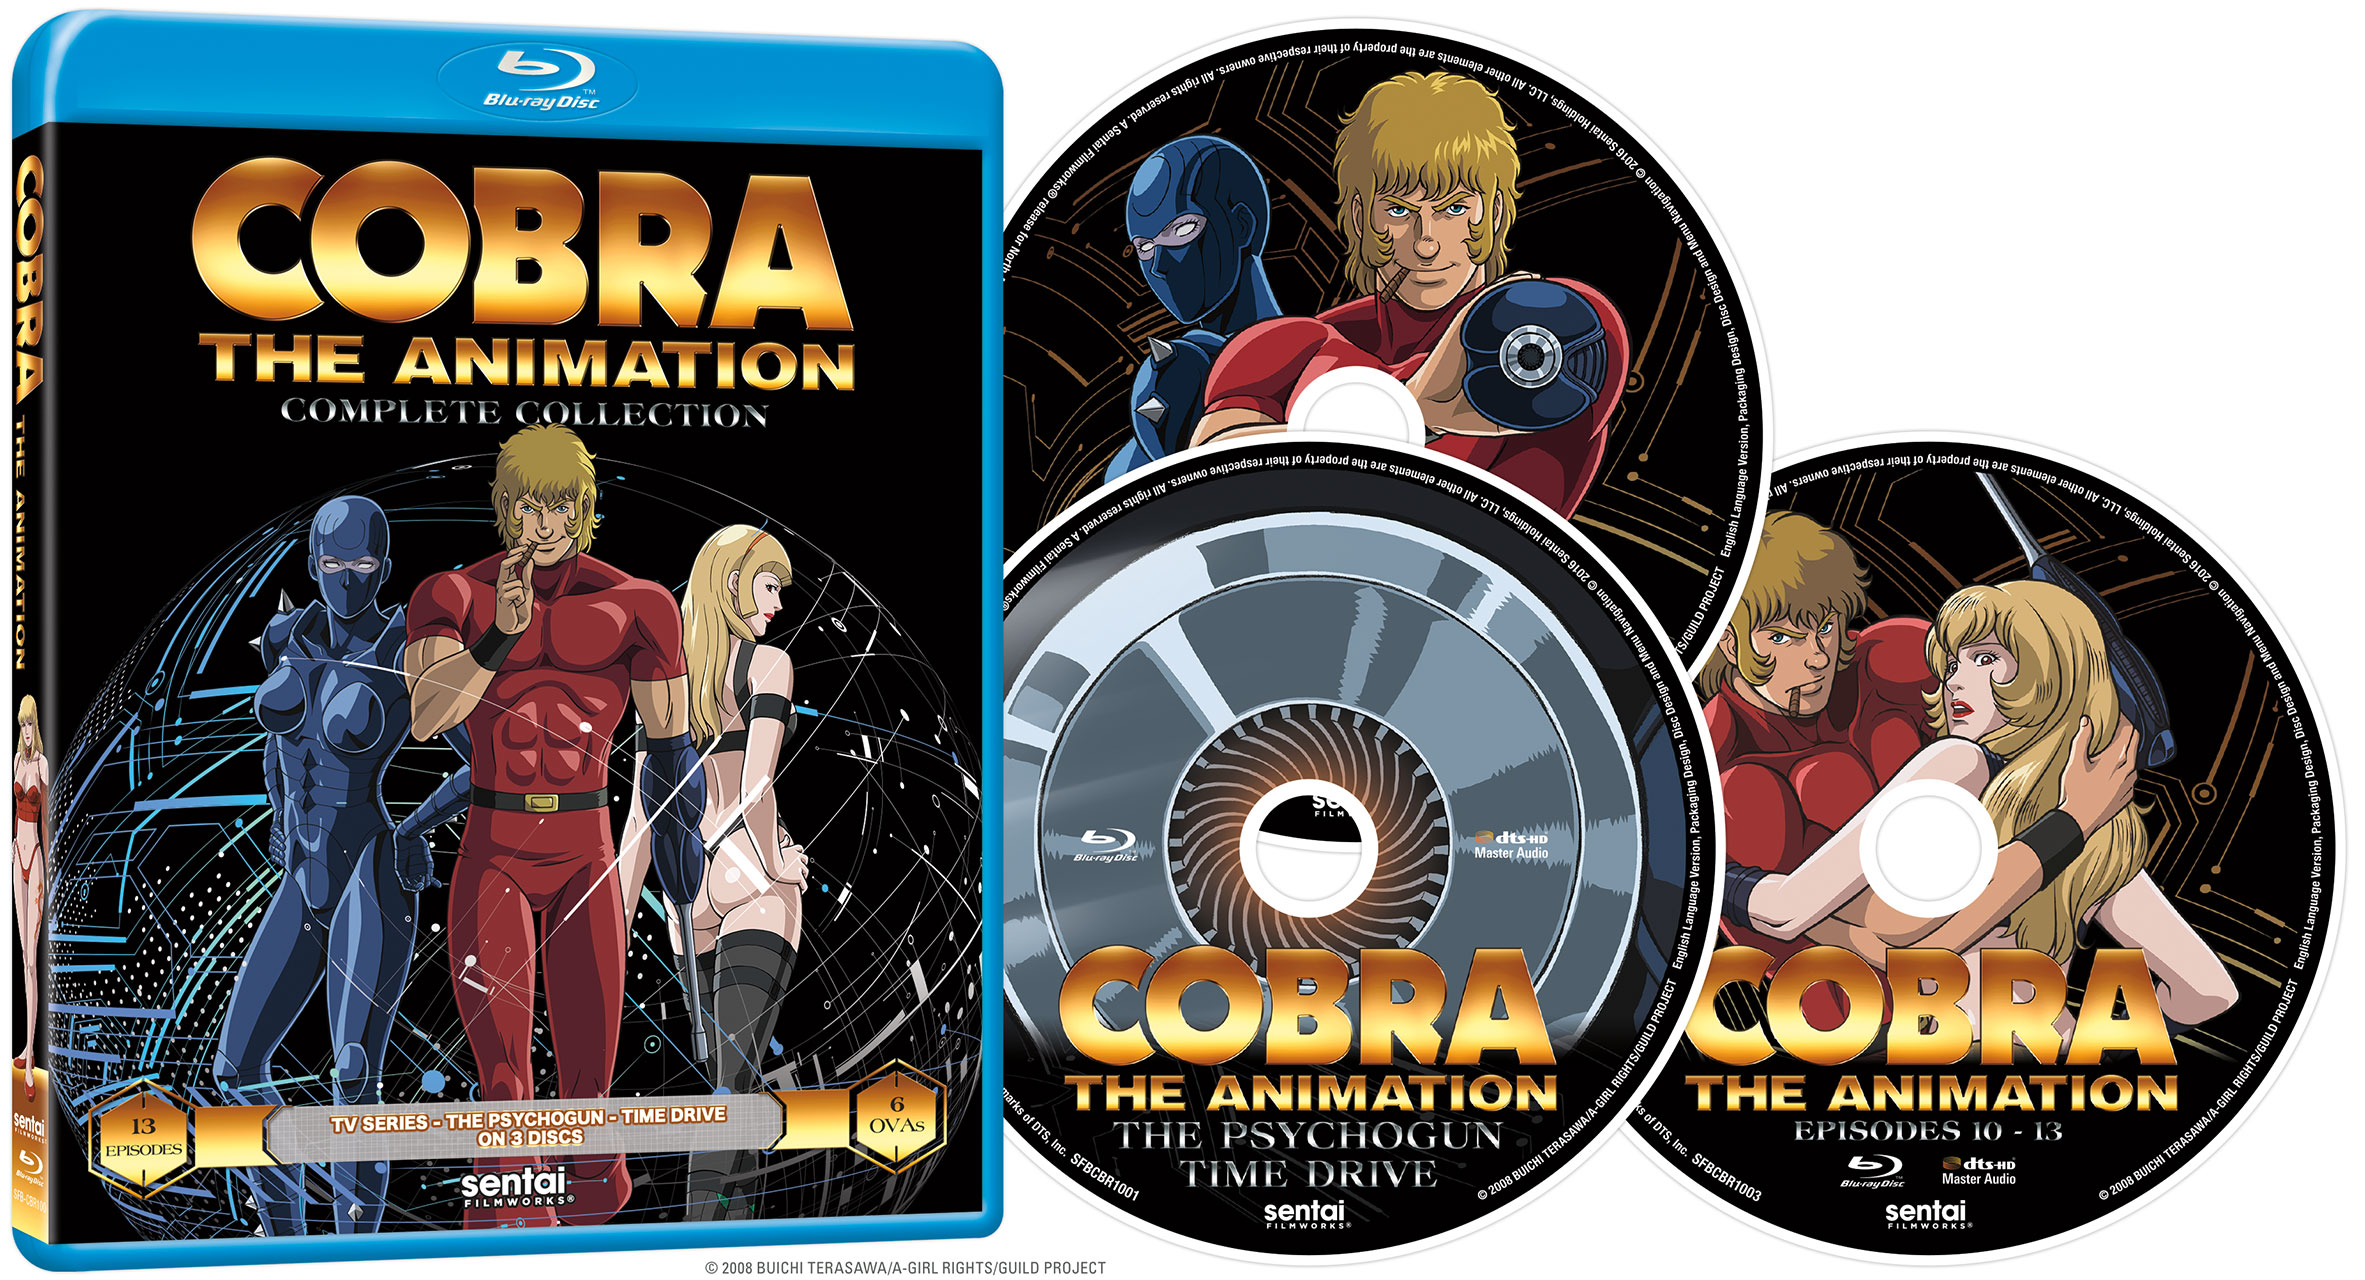 Cobra the Animation Blu-ray